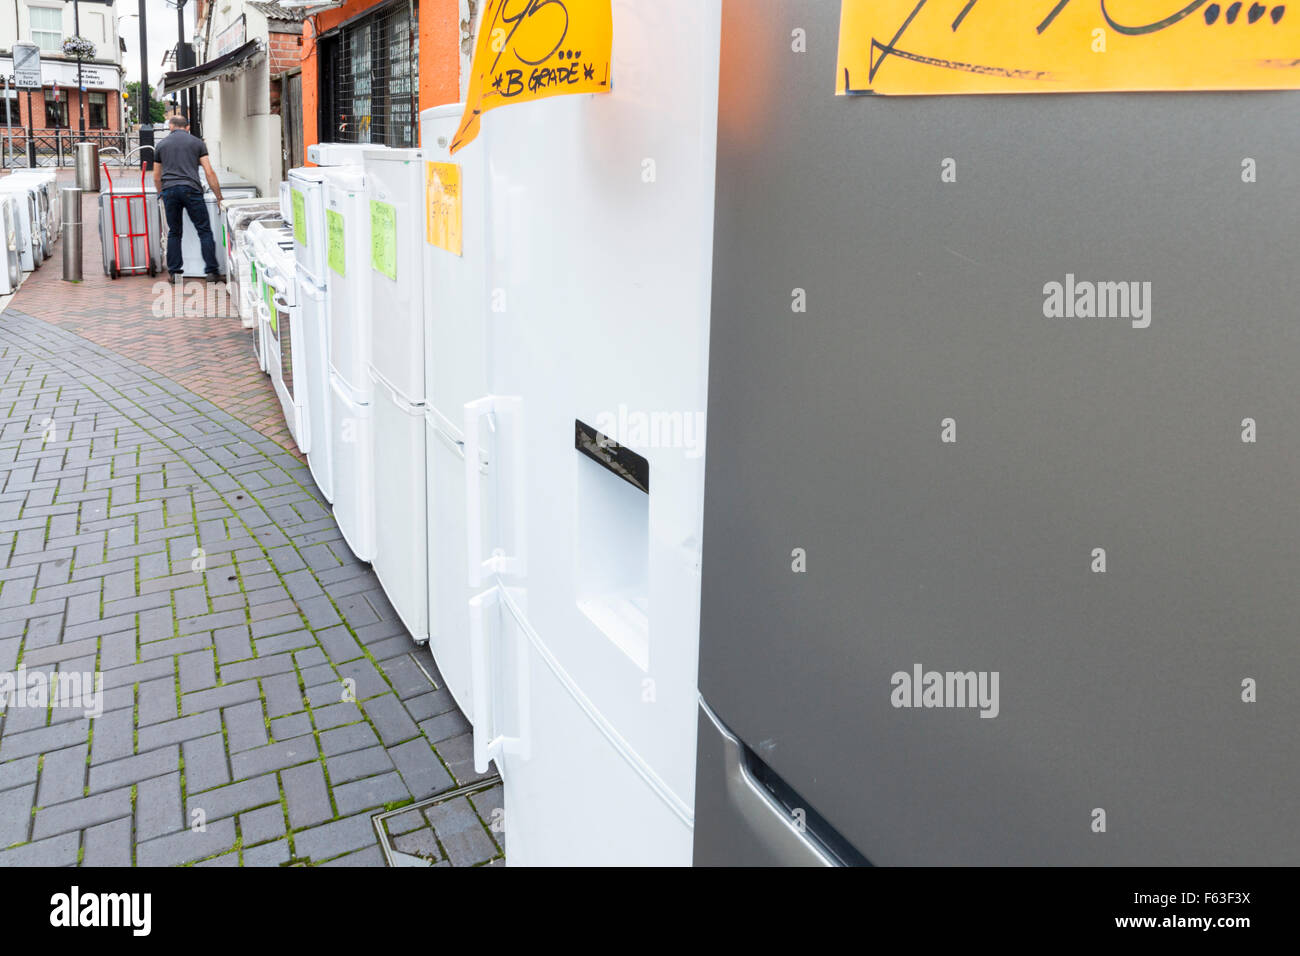 Second hand electrical goods for sale on a UK high street. - Stock Image